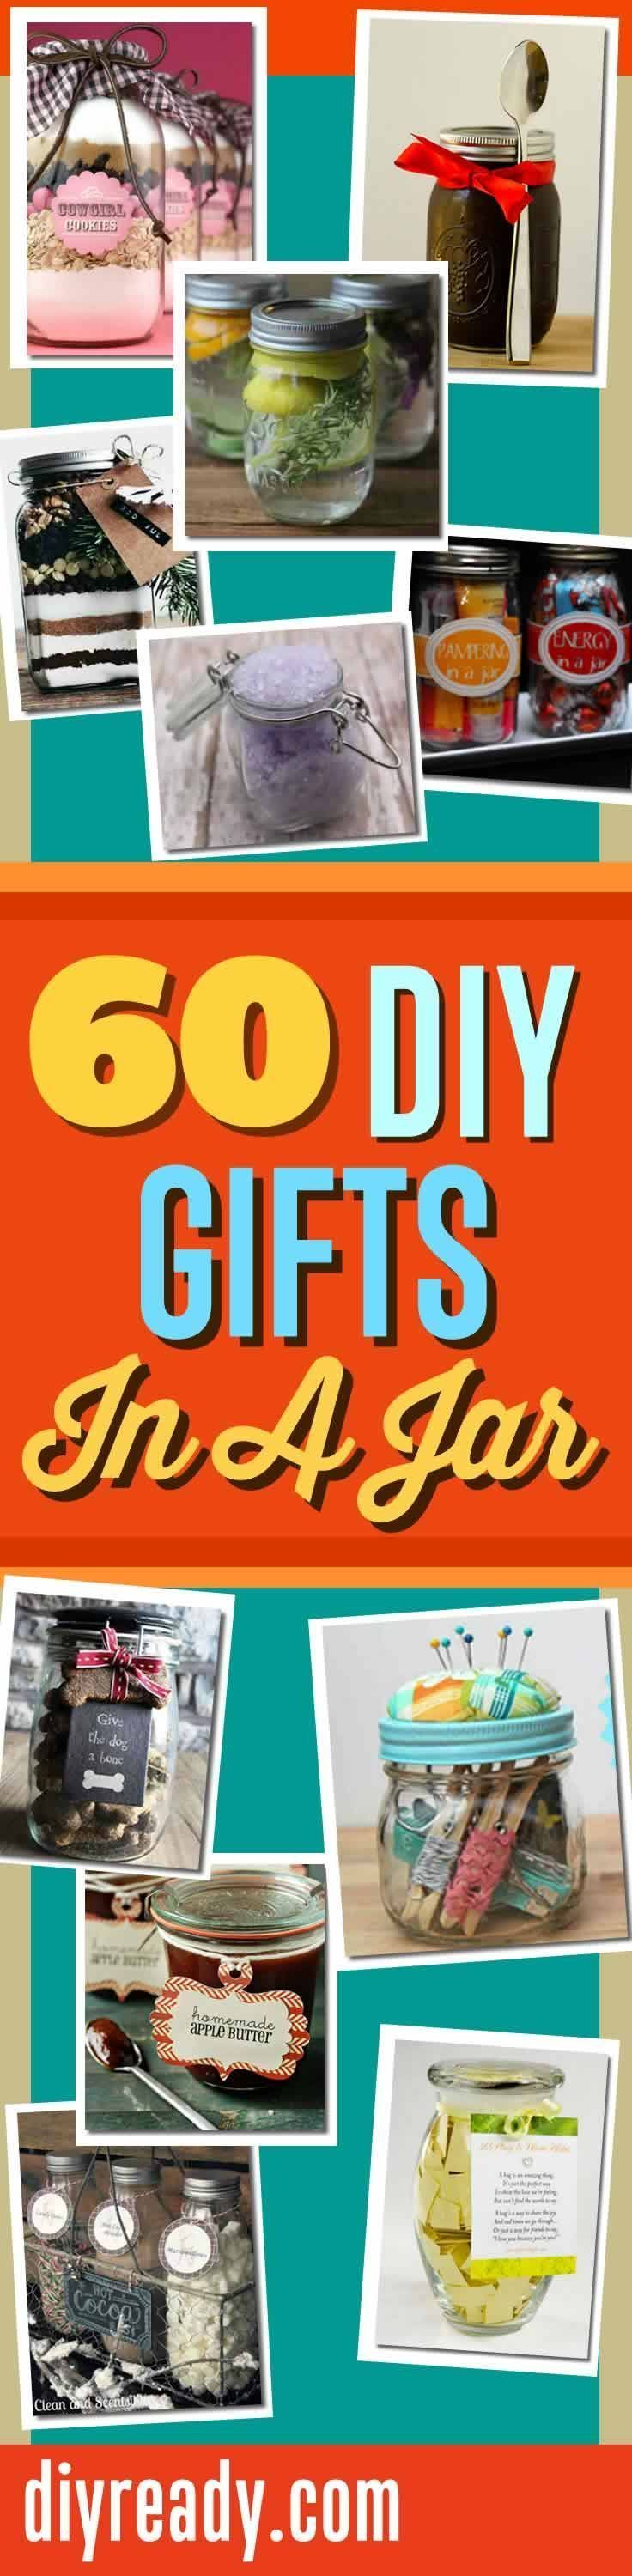 Gifts in a jar crafts pinterest easy diy gifts simple diy and